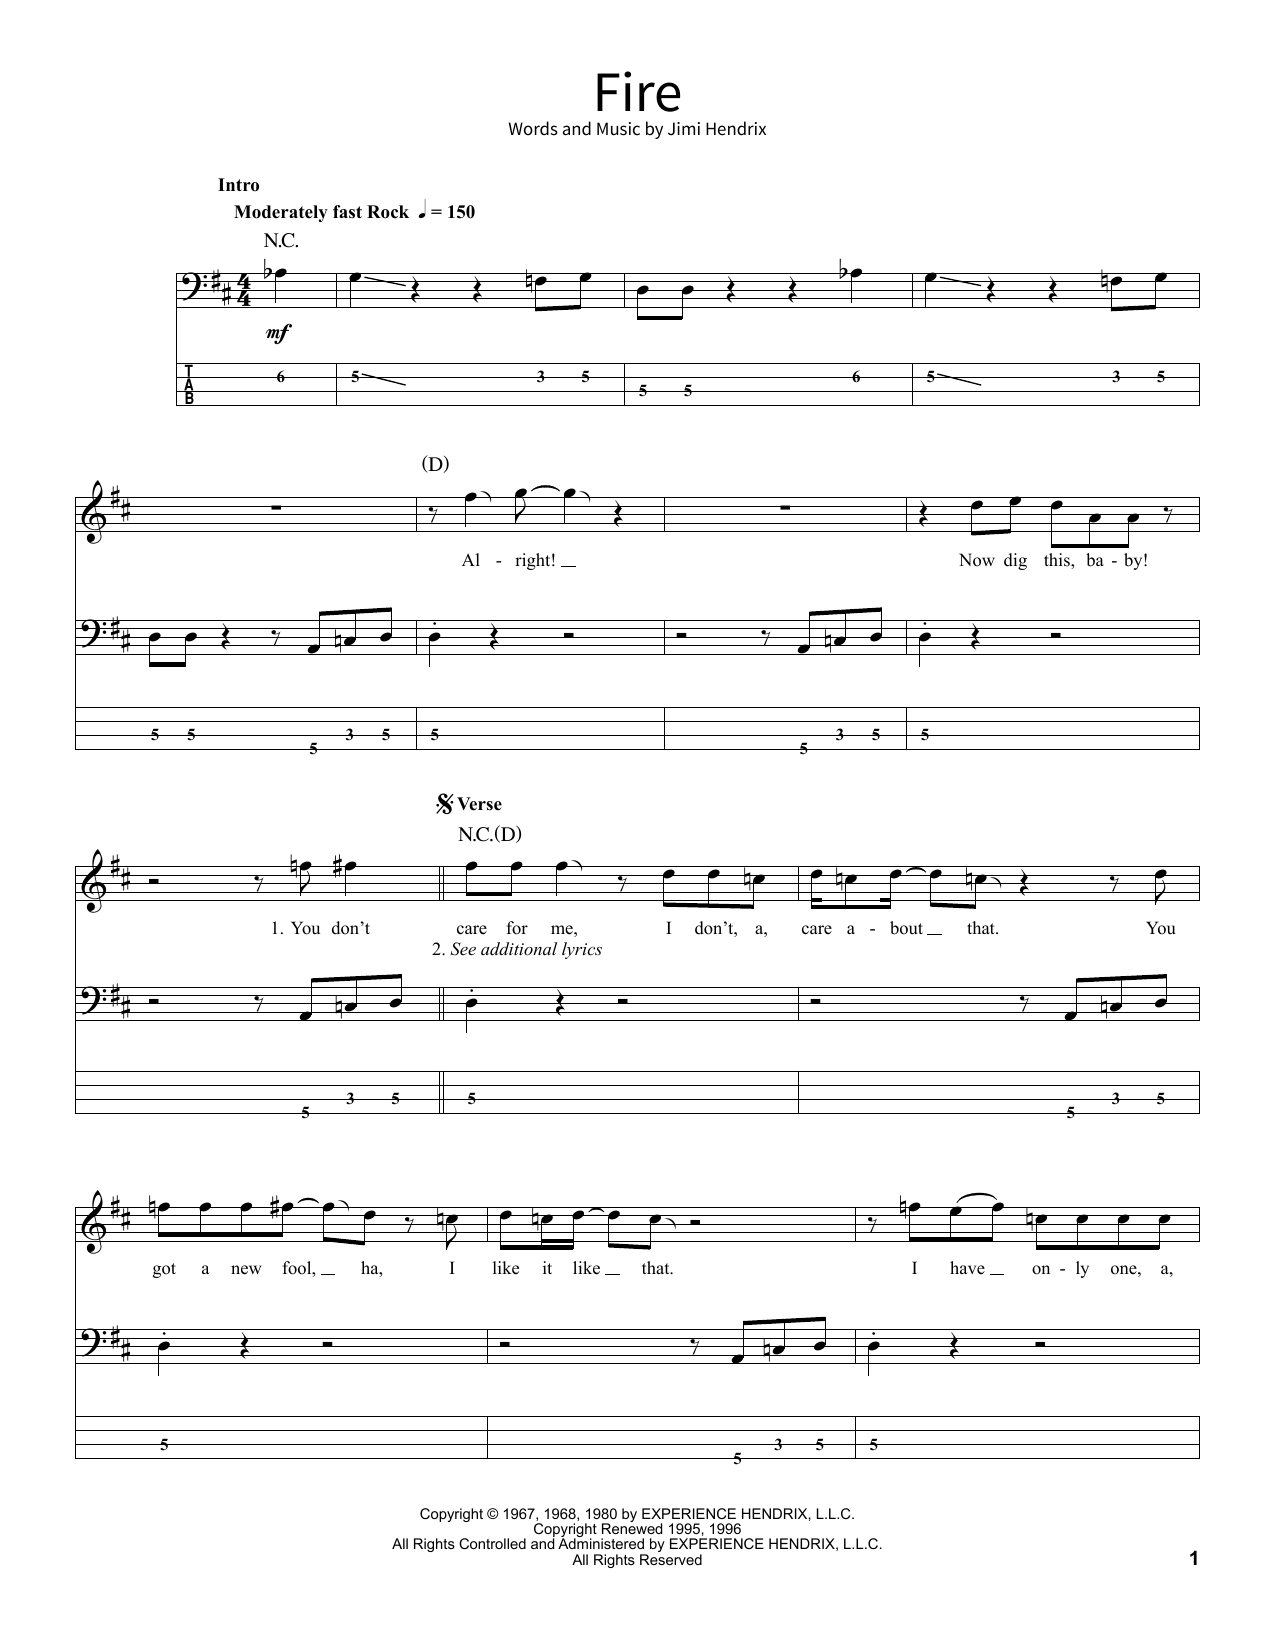 I See Fire Chords Jimi Hendrix Fire Sheet Music Notes Chords Download Printable School Of Rock Bass Guitar Sku 378913